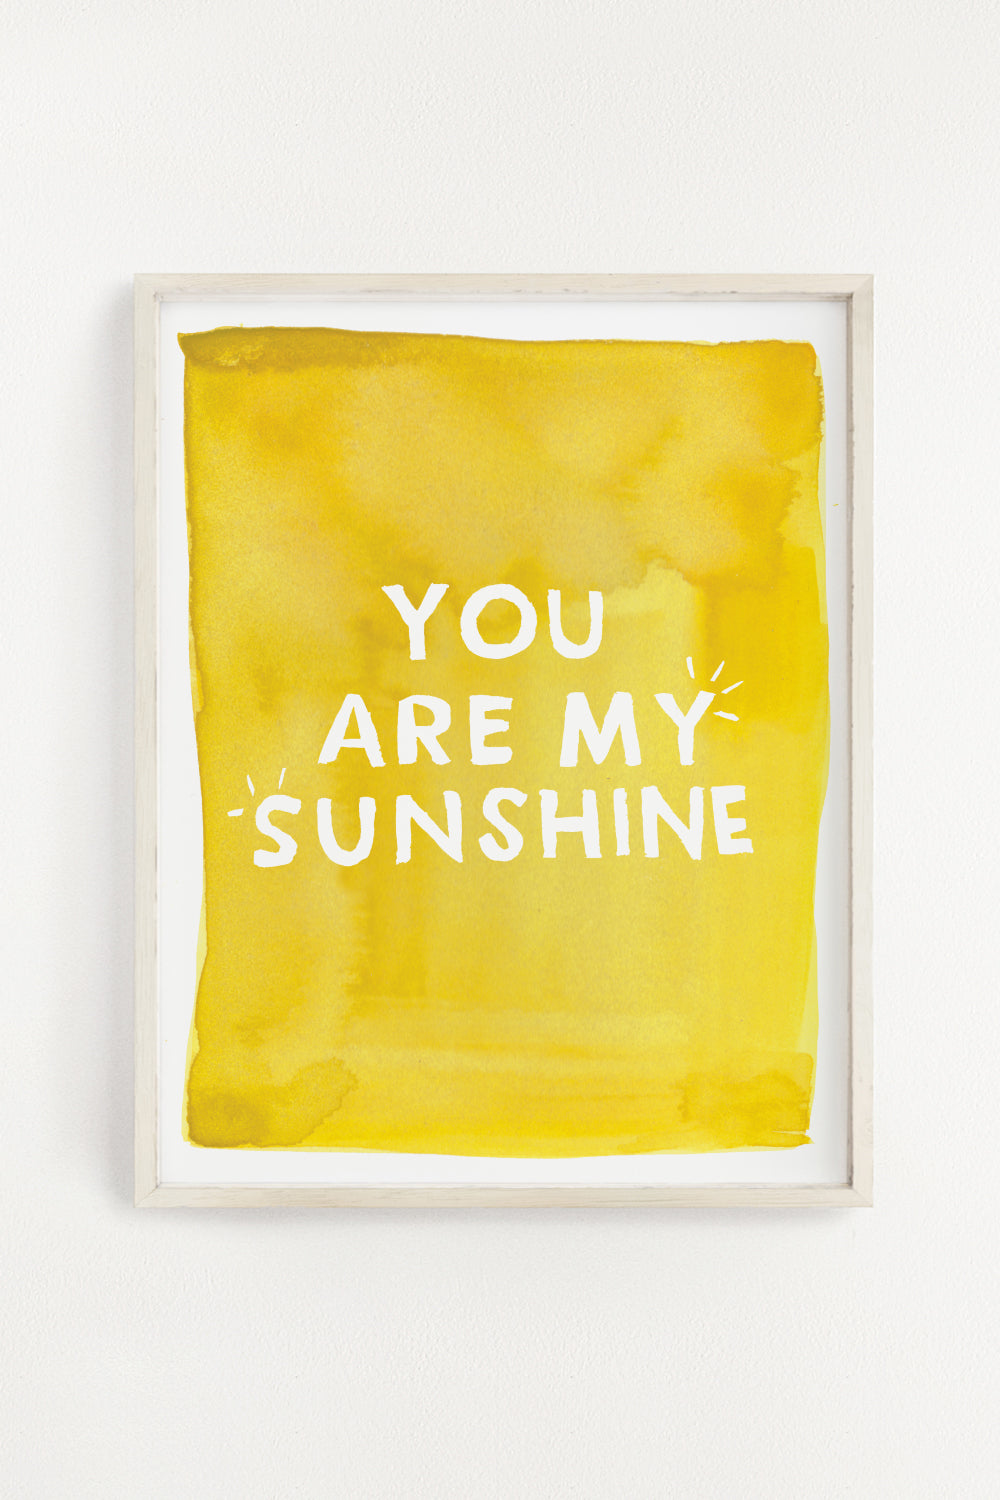 You are my Sunshine - 11x14